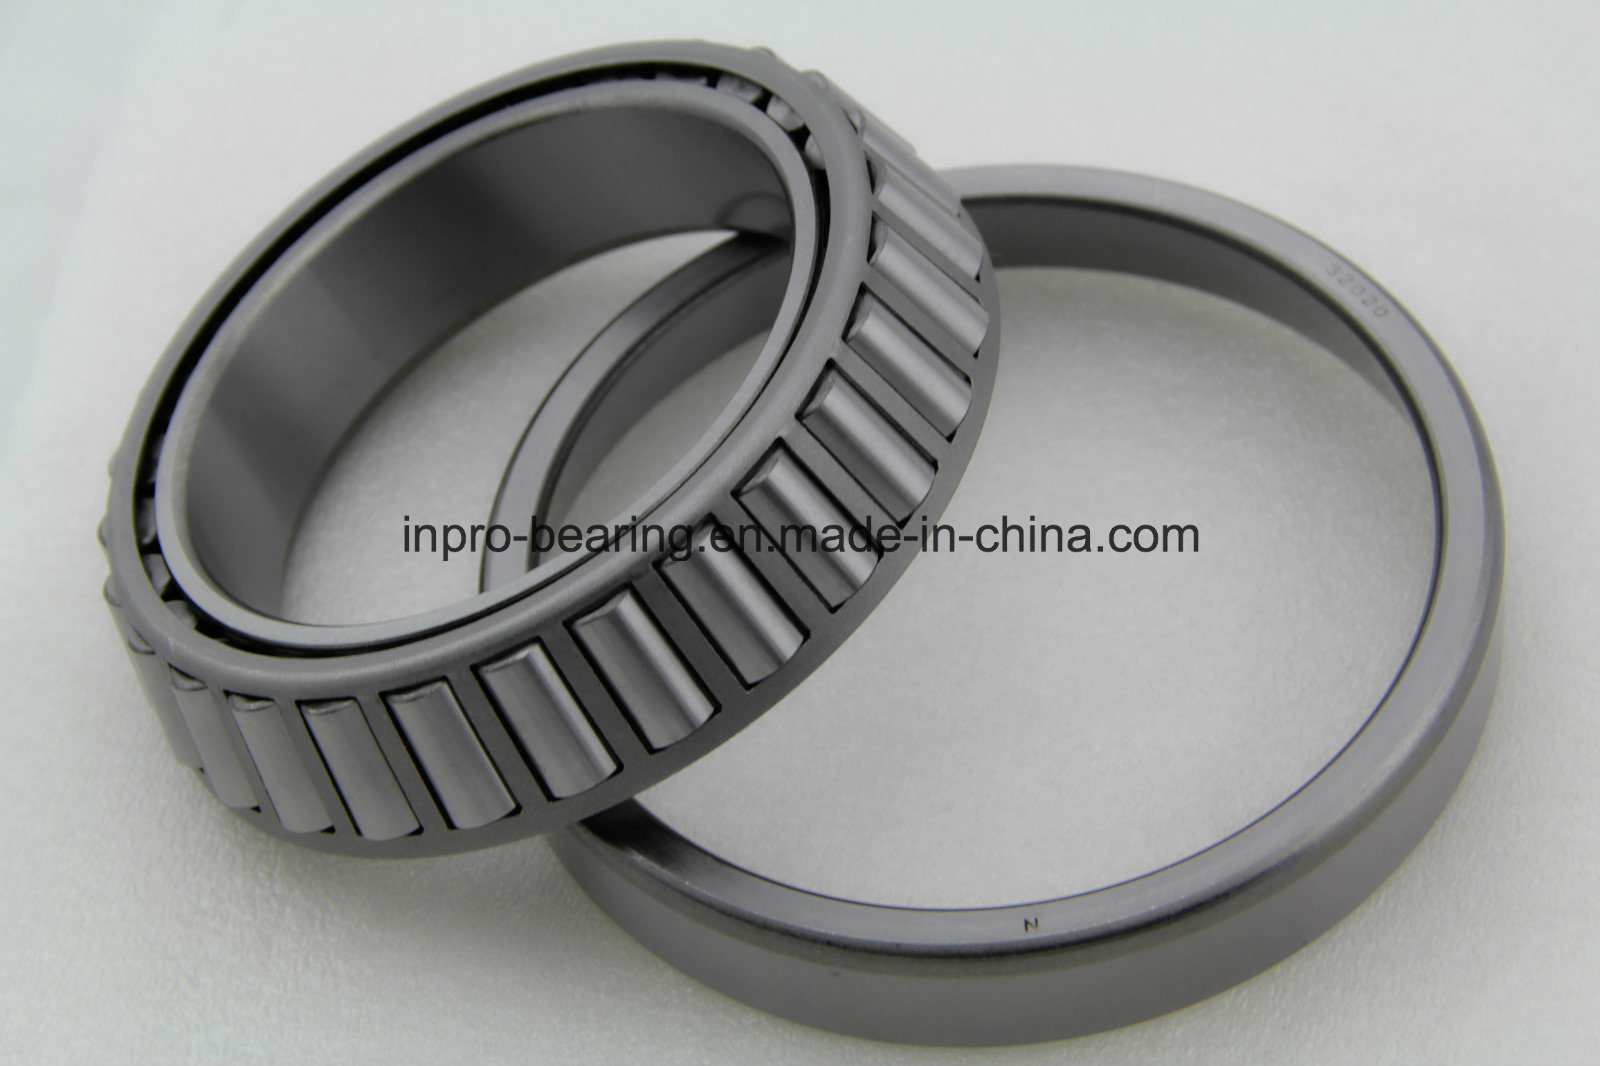 High Quality Tapered Roller Bearing 30205, 30206, 30207, 30208, 30209